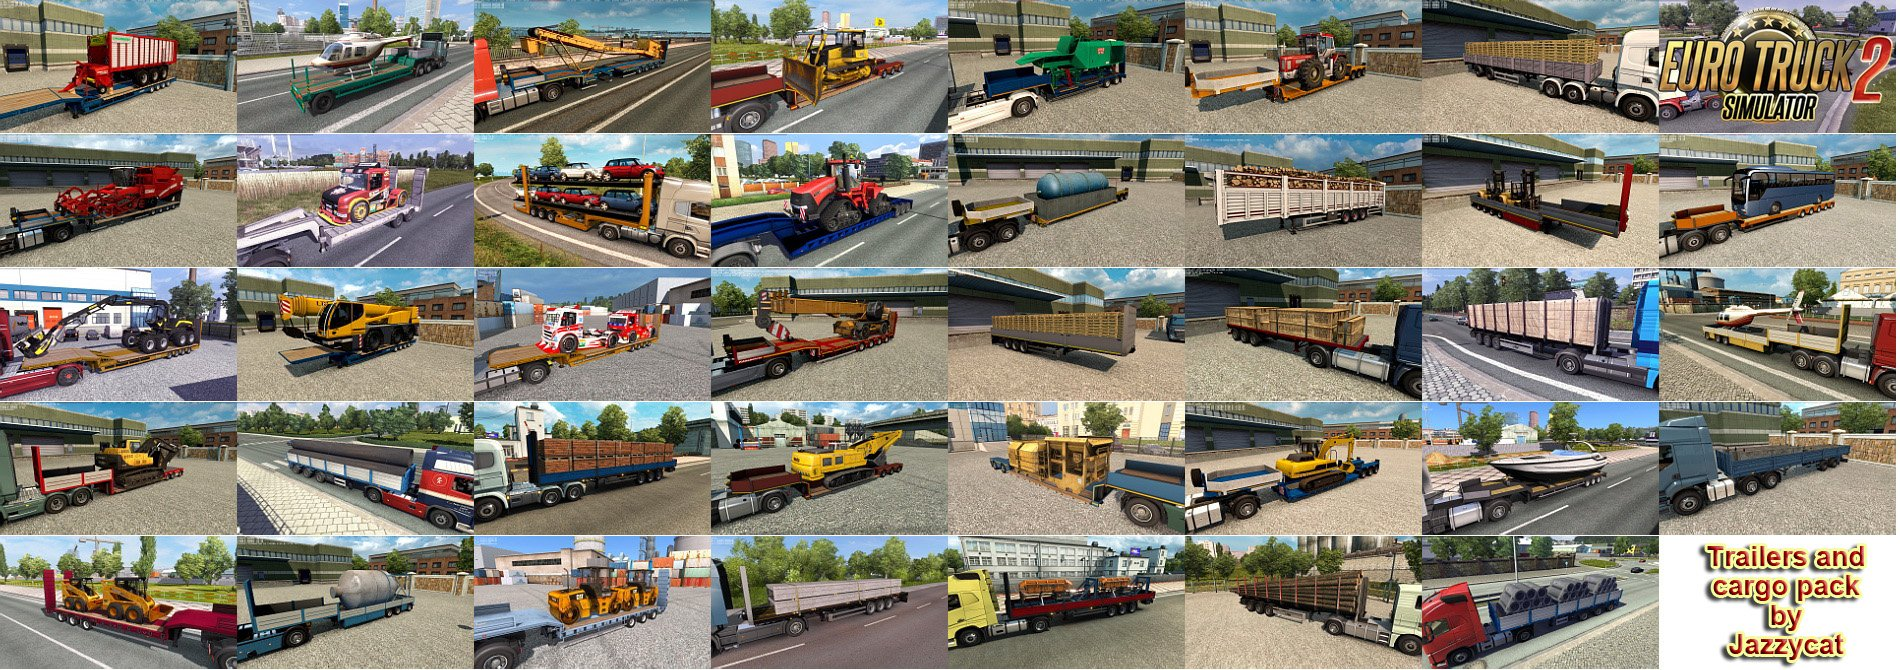 Trailers and Cargo Pack v6.4 by Jazzycat